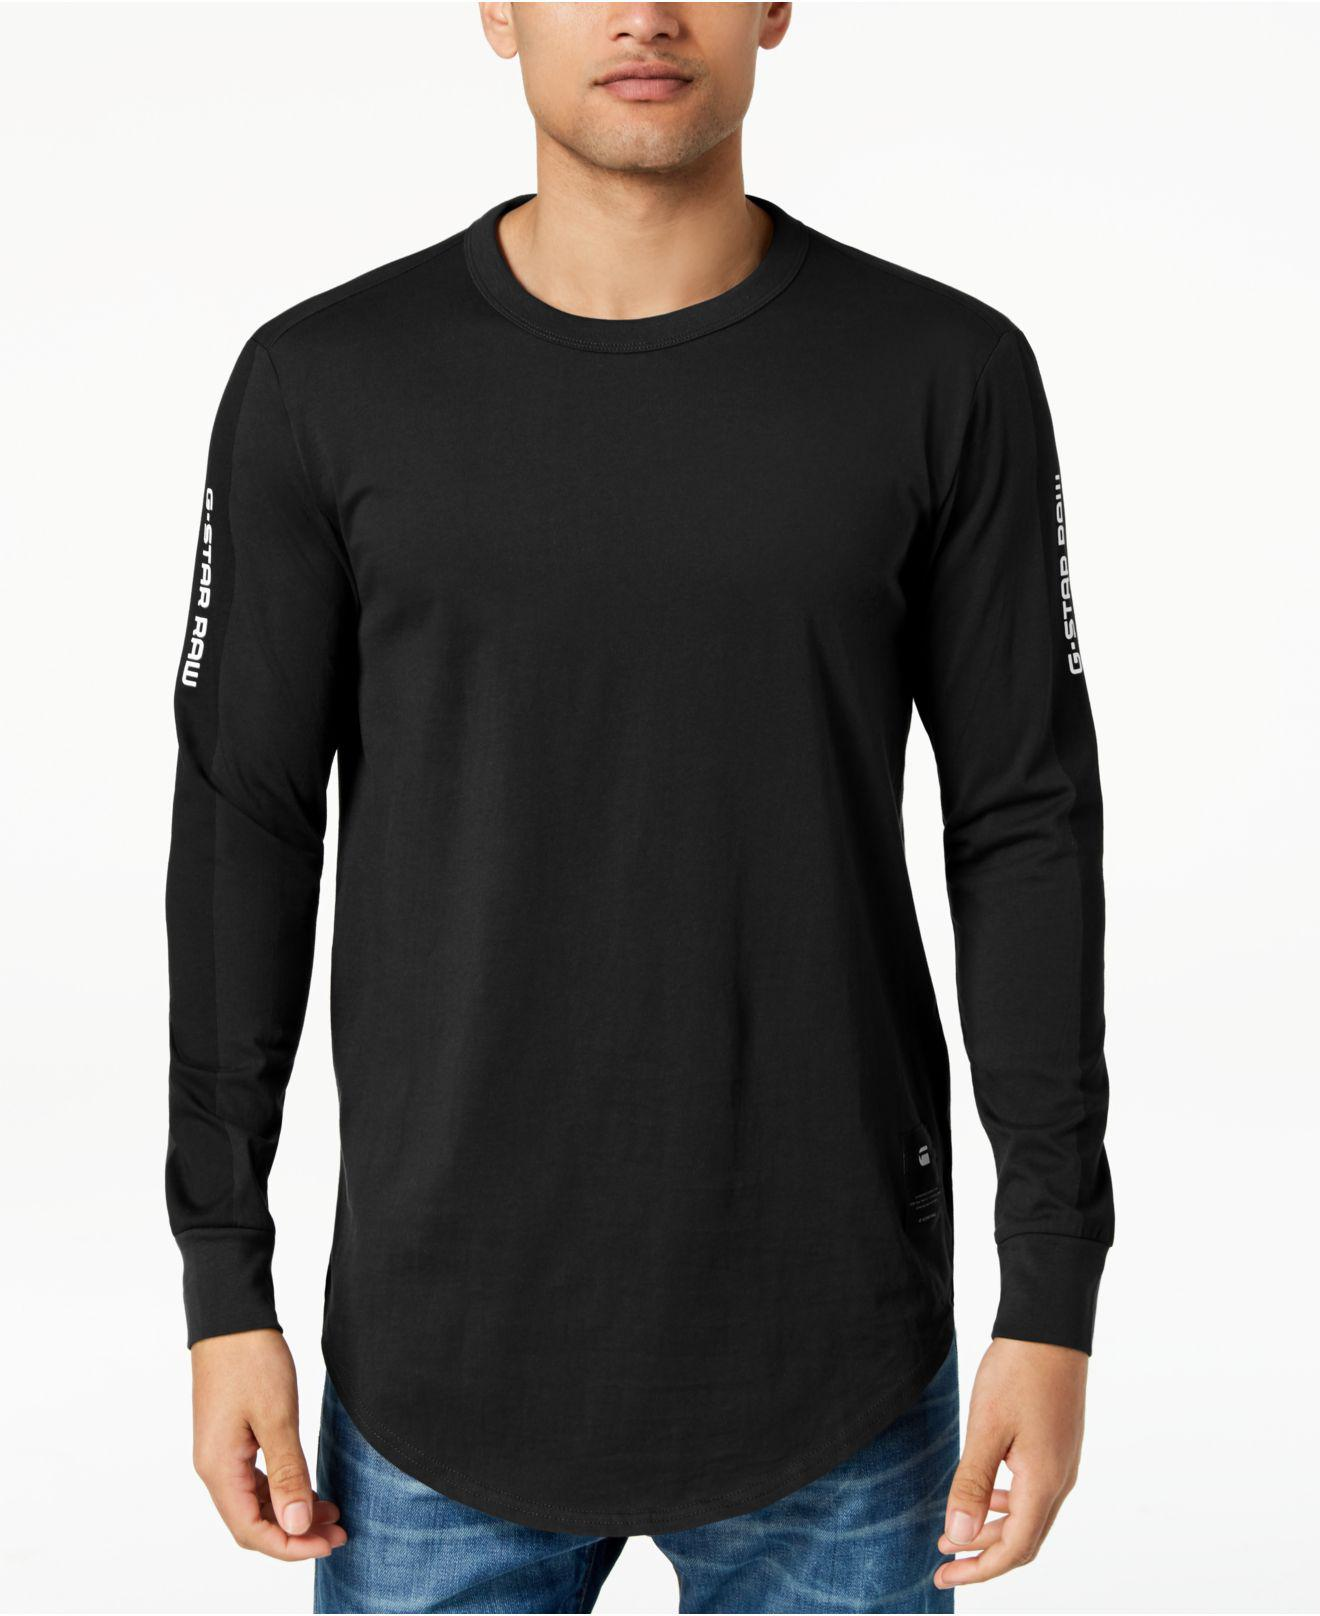 5b3144b1b6f G-Star RAW Swando Stripe Logo Long Sleeve T-shirt, Created For ...